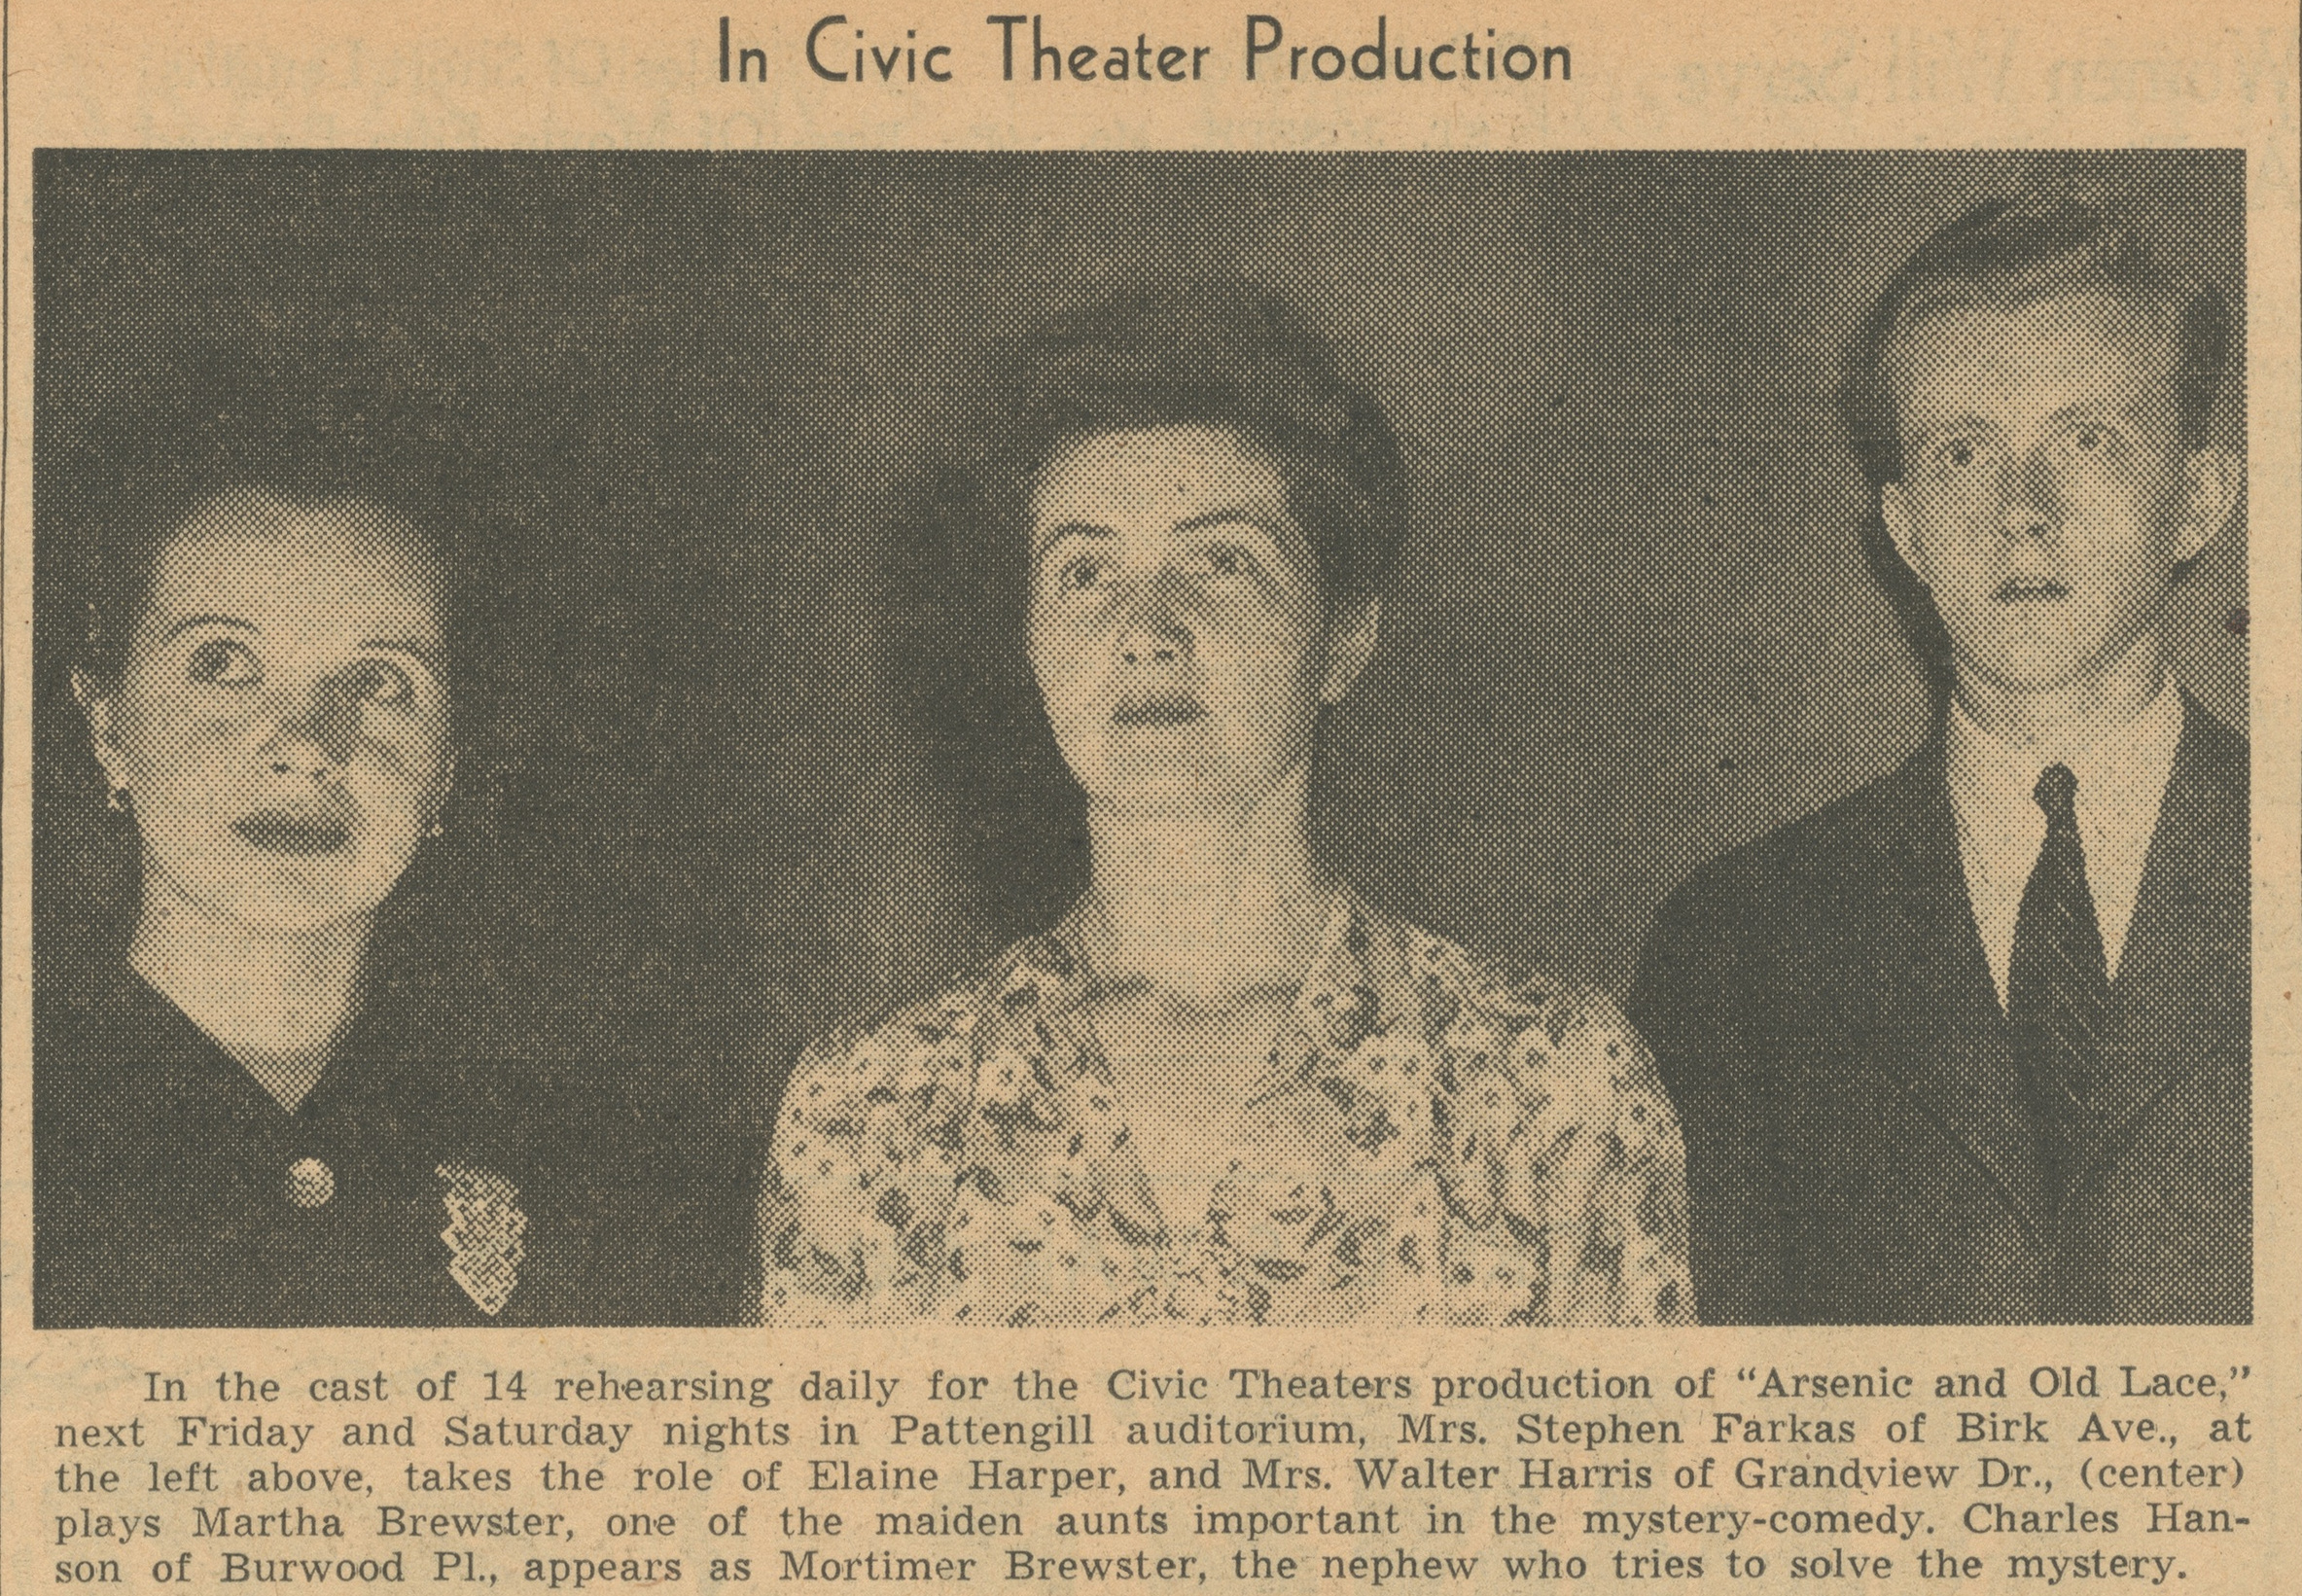 In Civic Theater Production image